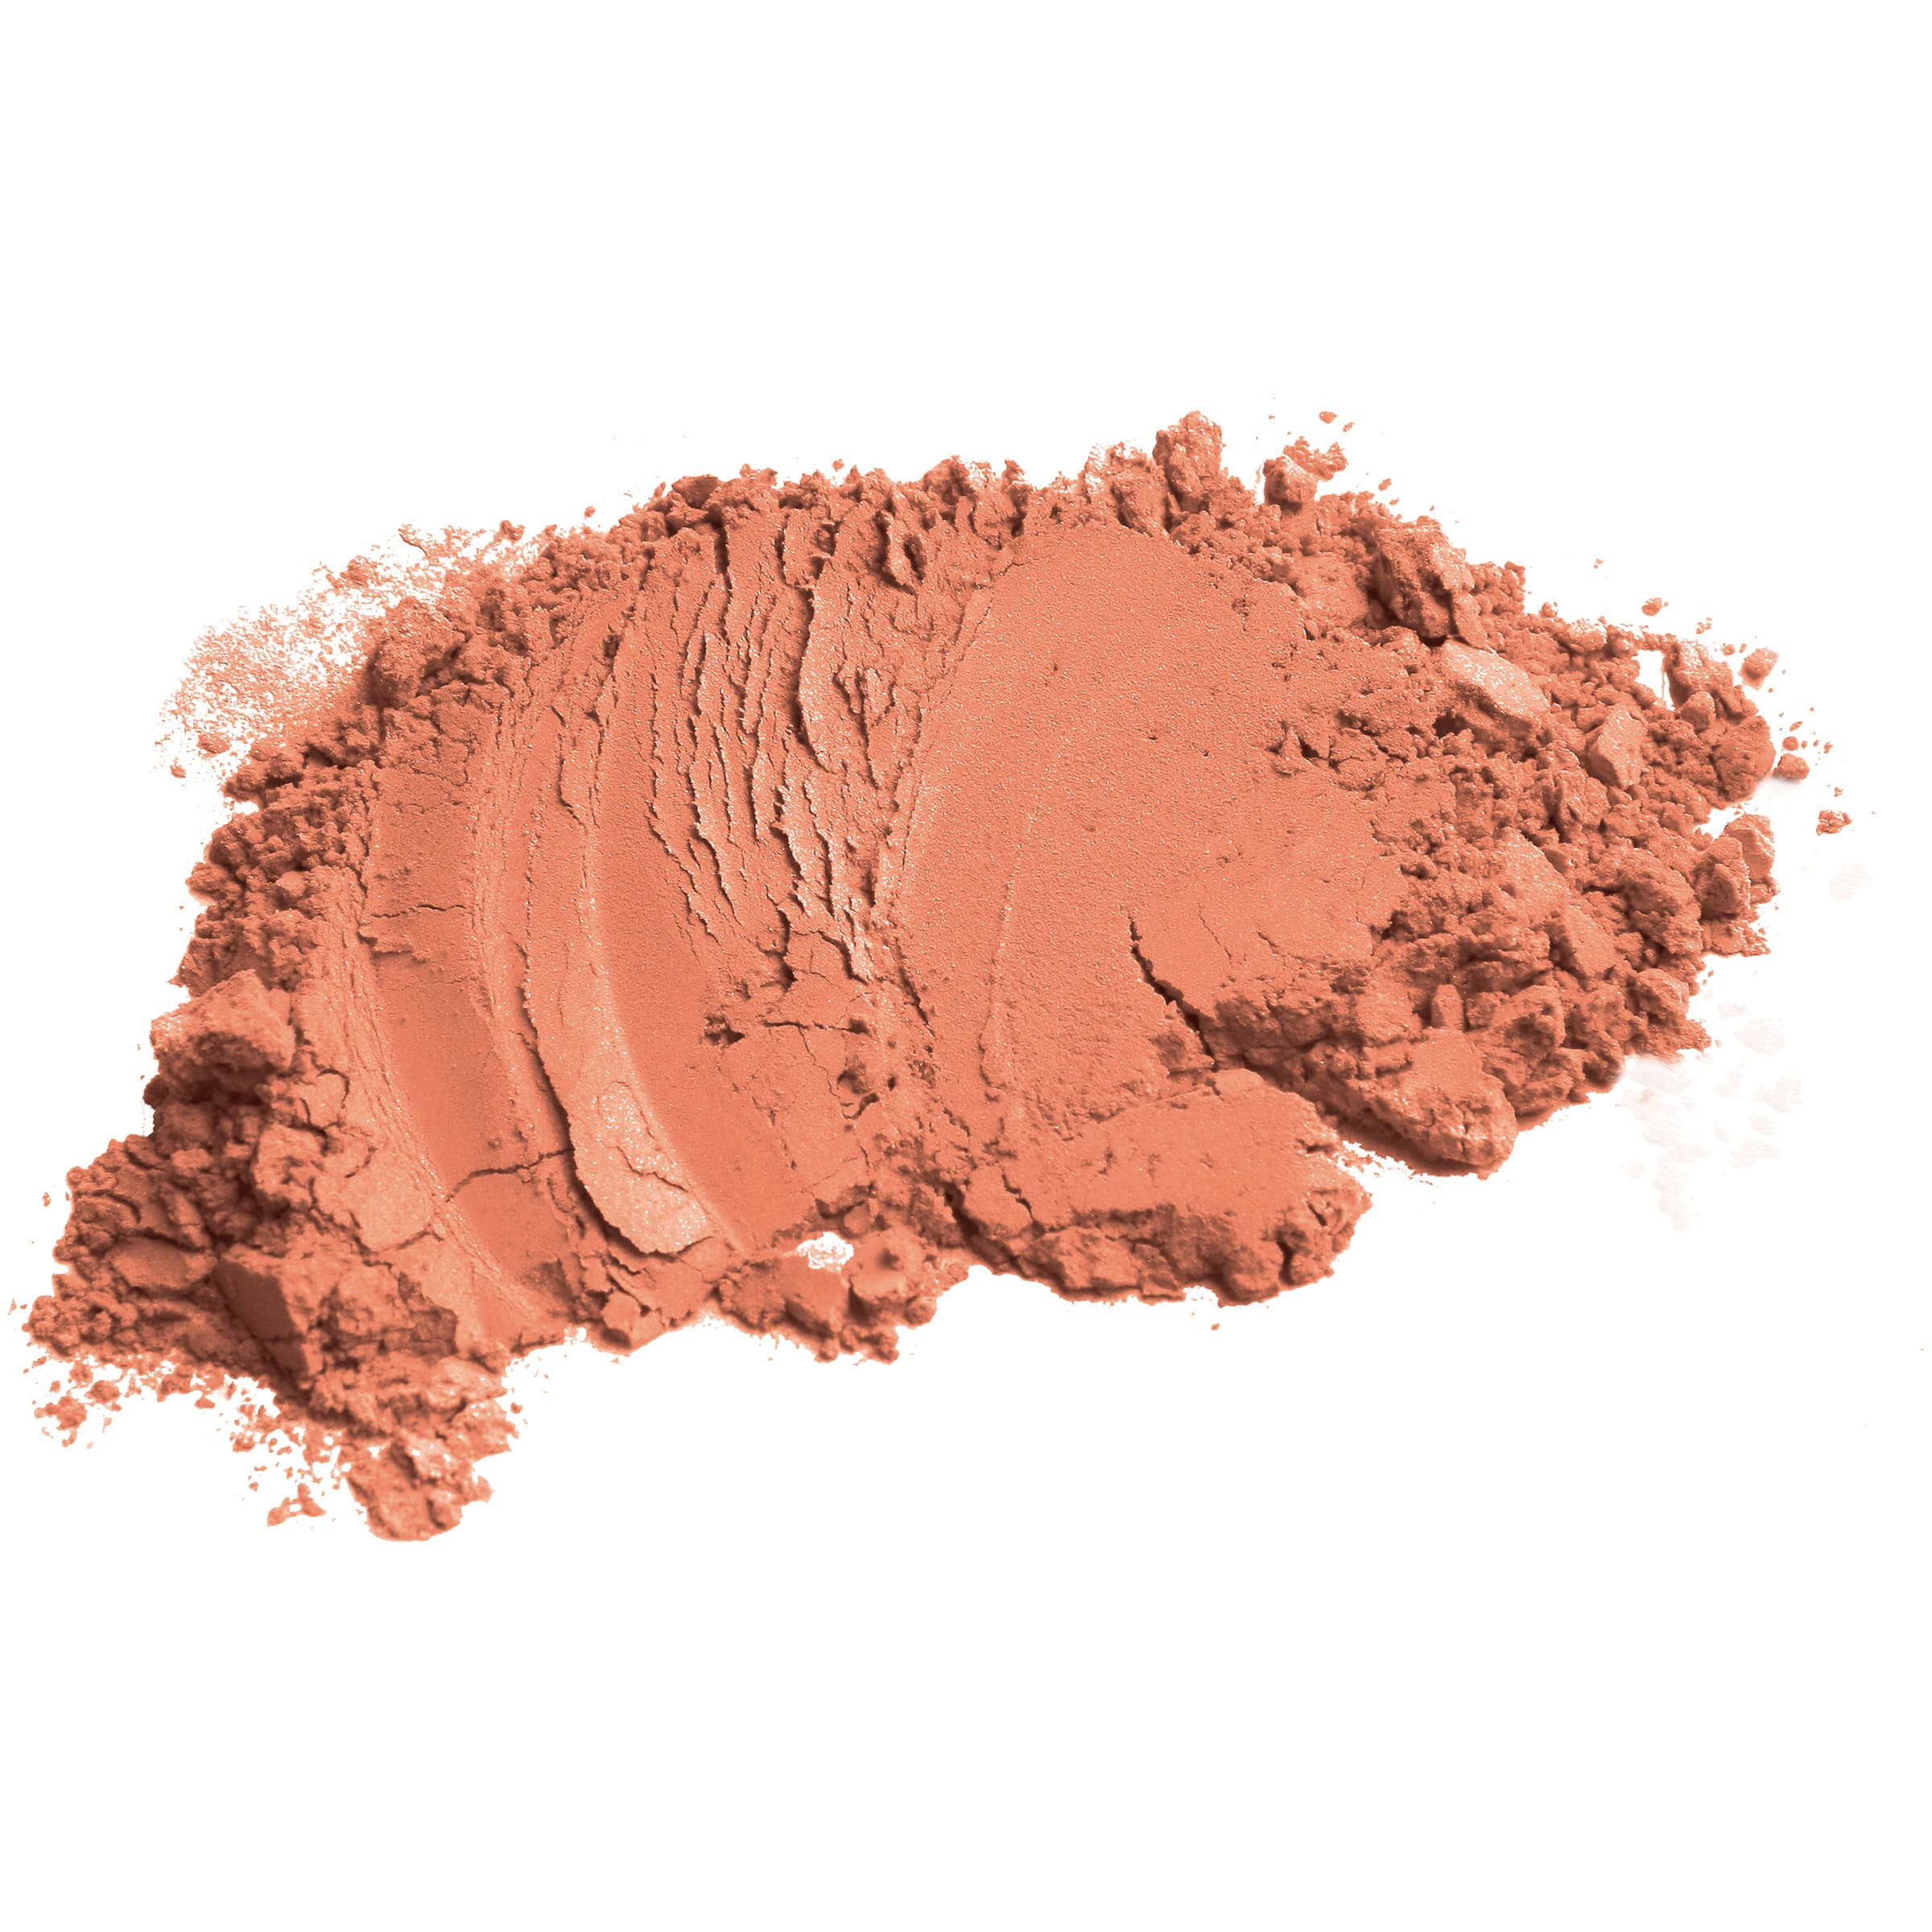 L'Oreal Paris Paradise Enchanted Fruit-Scented Blush Makeup, Bashful